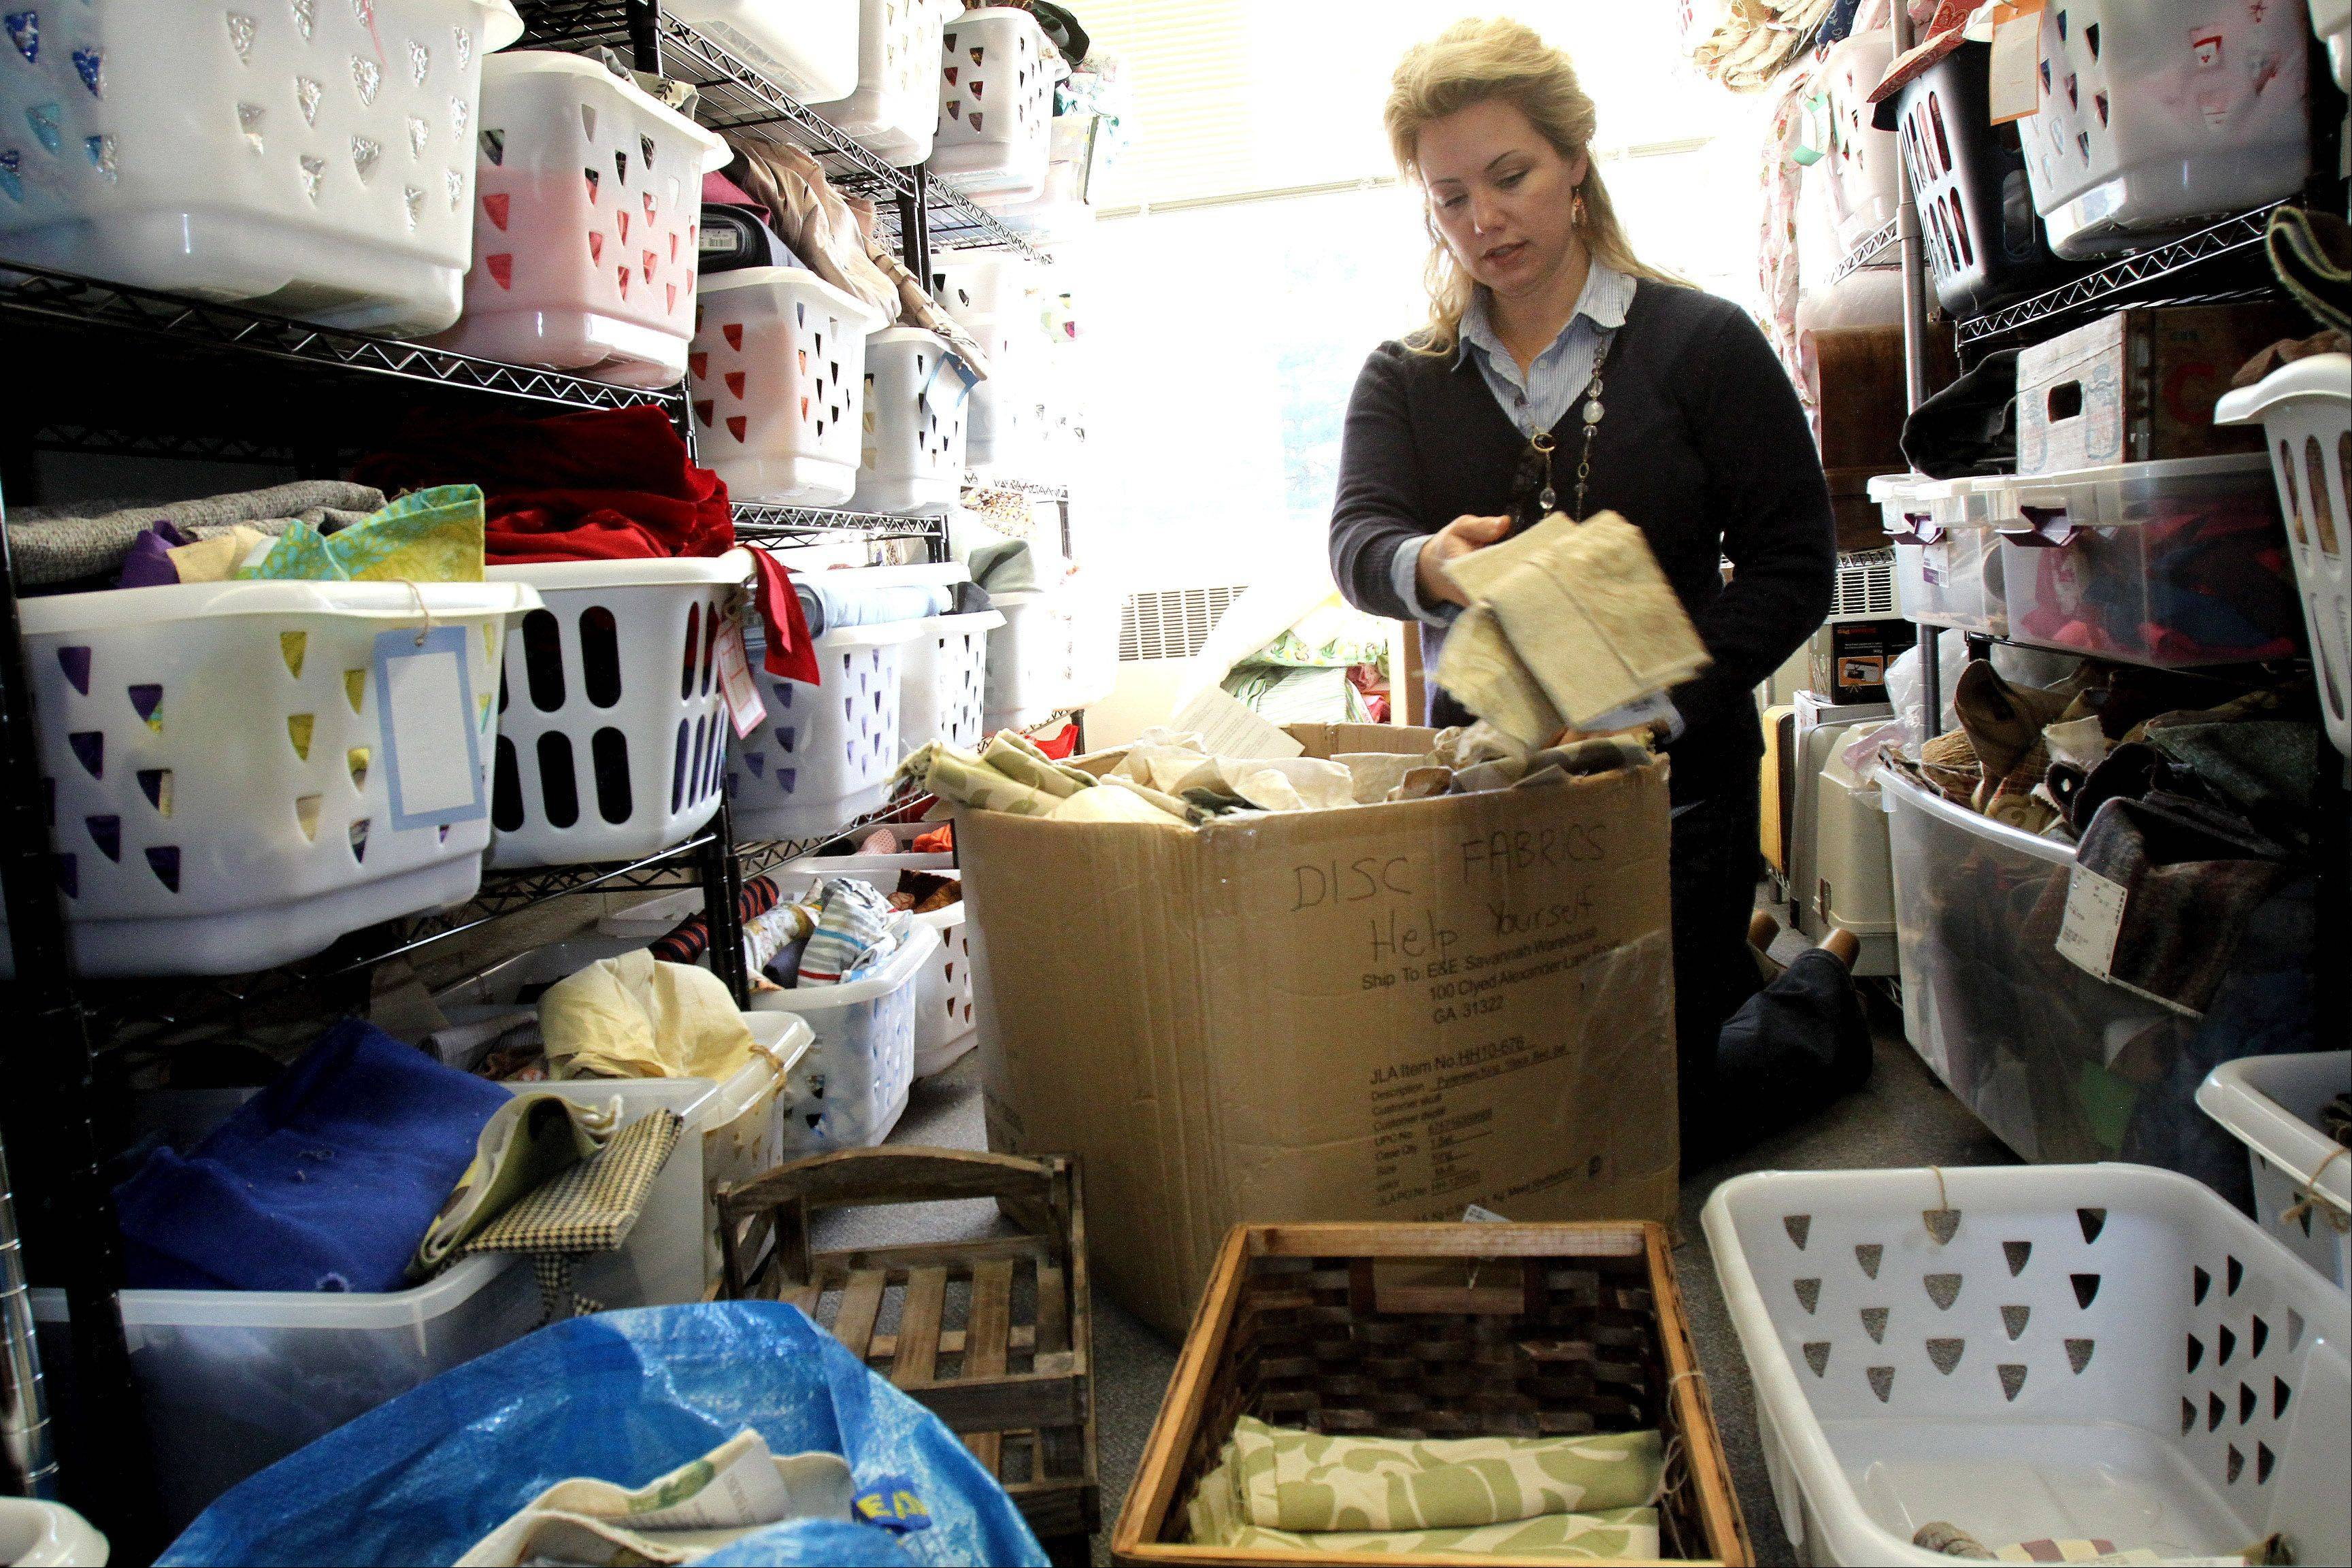 Rebecca Sandberg sorts through pieces of cloth, donated from Toms-Price furniture store, at her shop Re: new in Glen Ellyn. This store and others donate samples and materials to Re: new, which allows them to make their products.